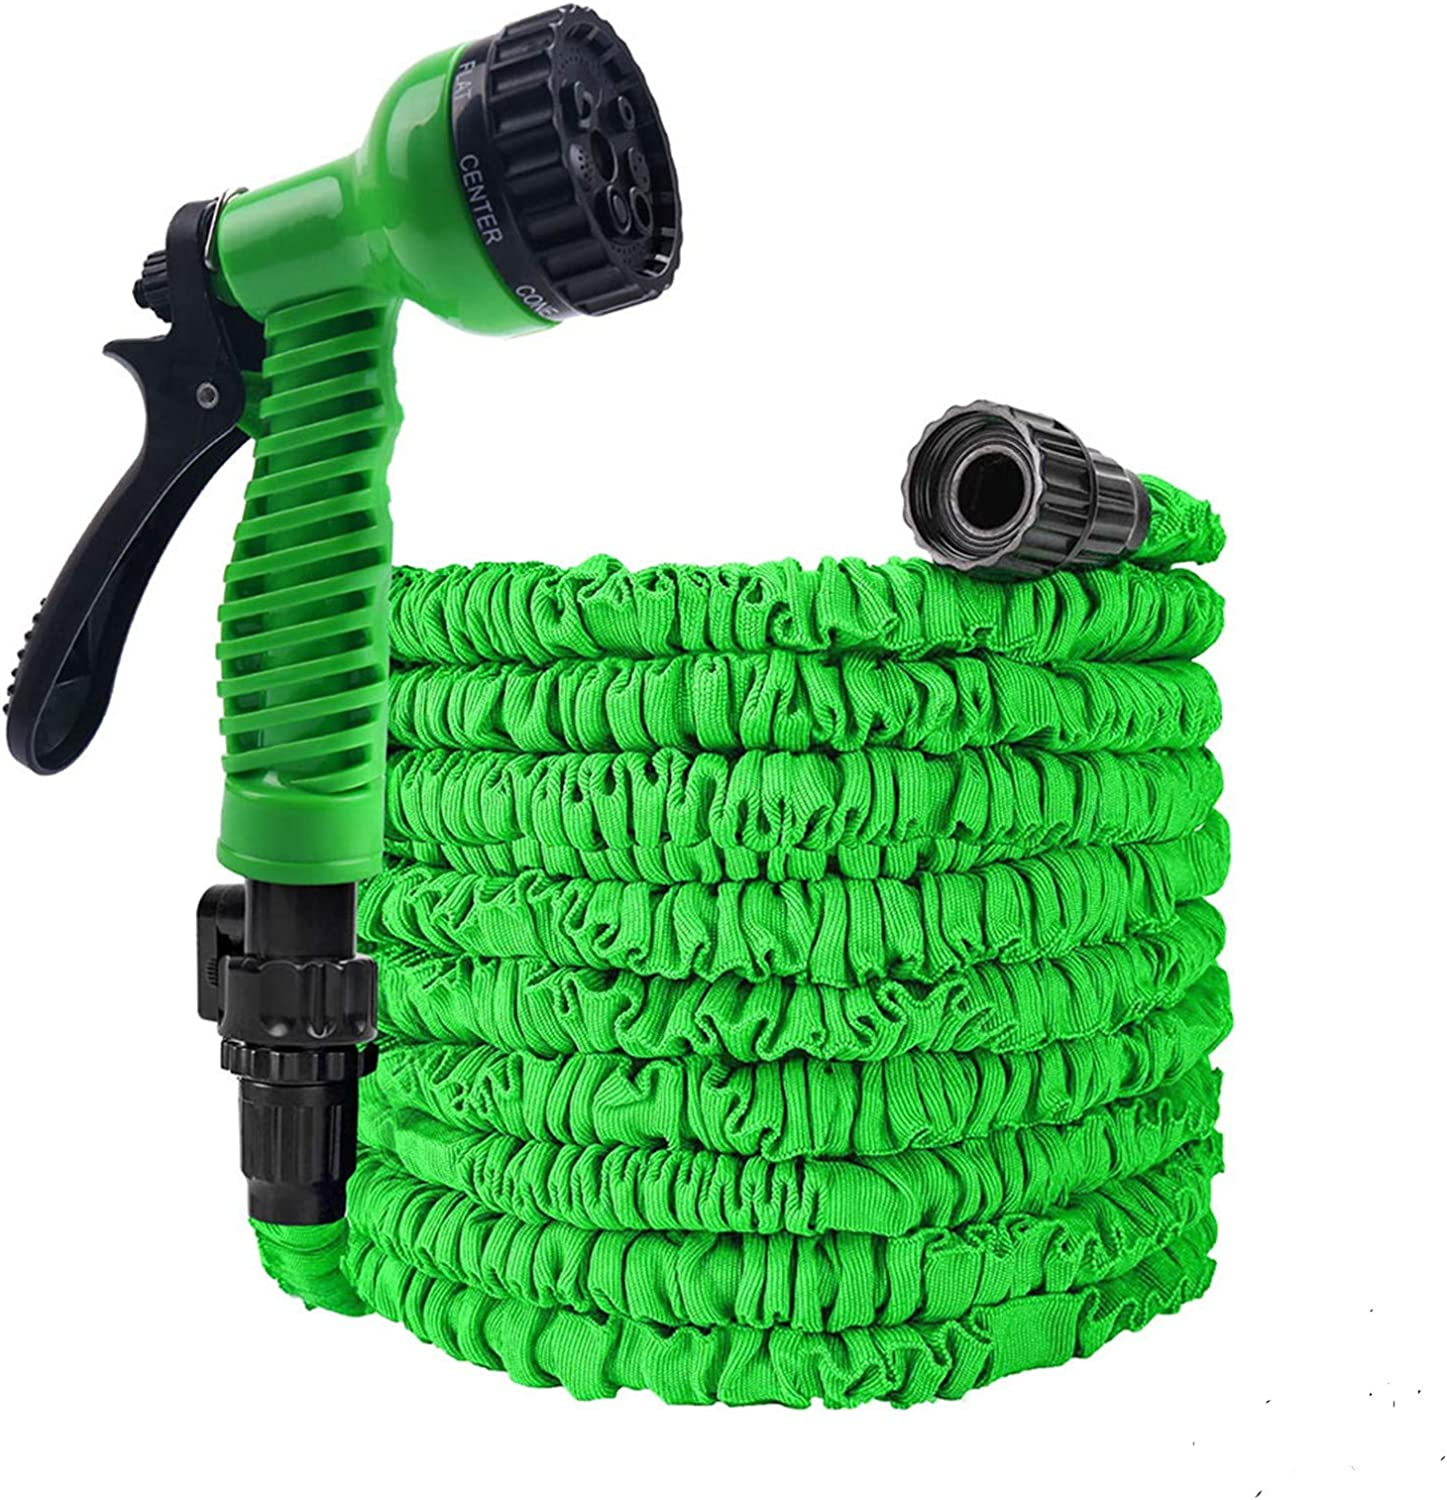 Flantor Garden Hose 25ft Water Hose, Expandable Garden Hose with 7-Pattern Spray Nozzle Collapsible Hose with Lightweight Triple Latex Core for Outdoor Gardening (25ft, Green)